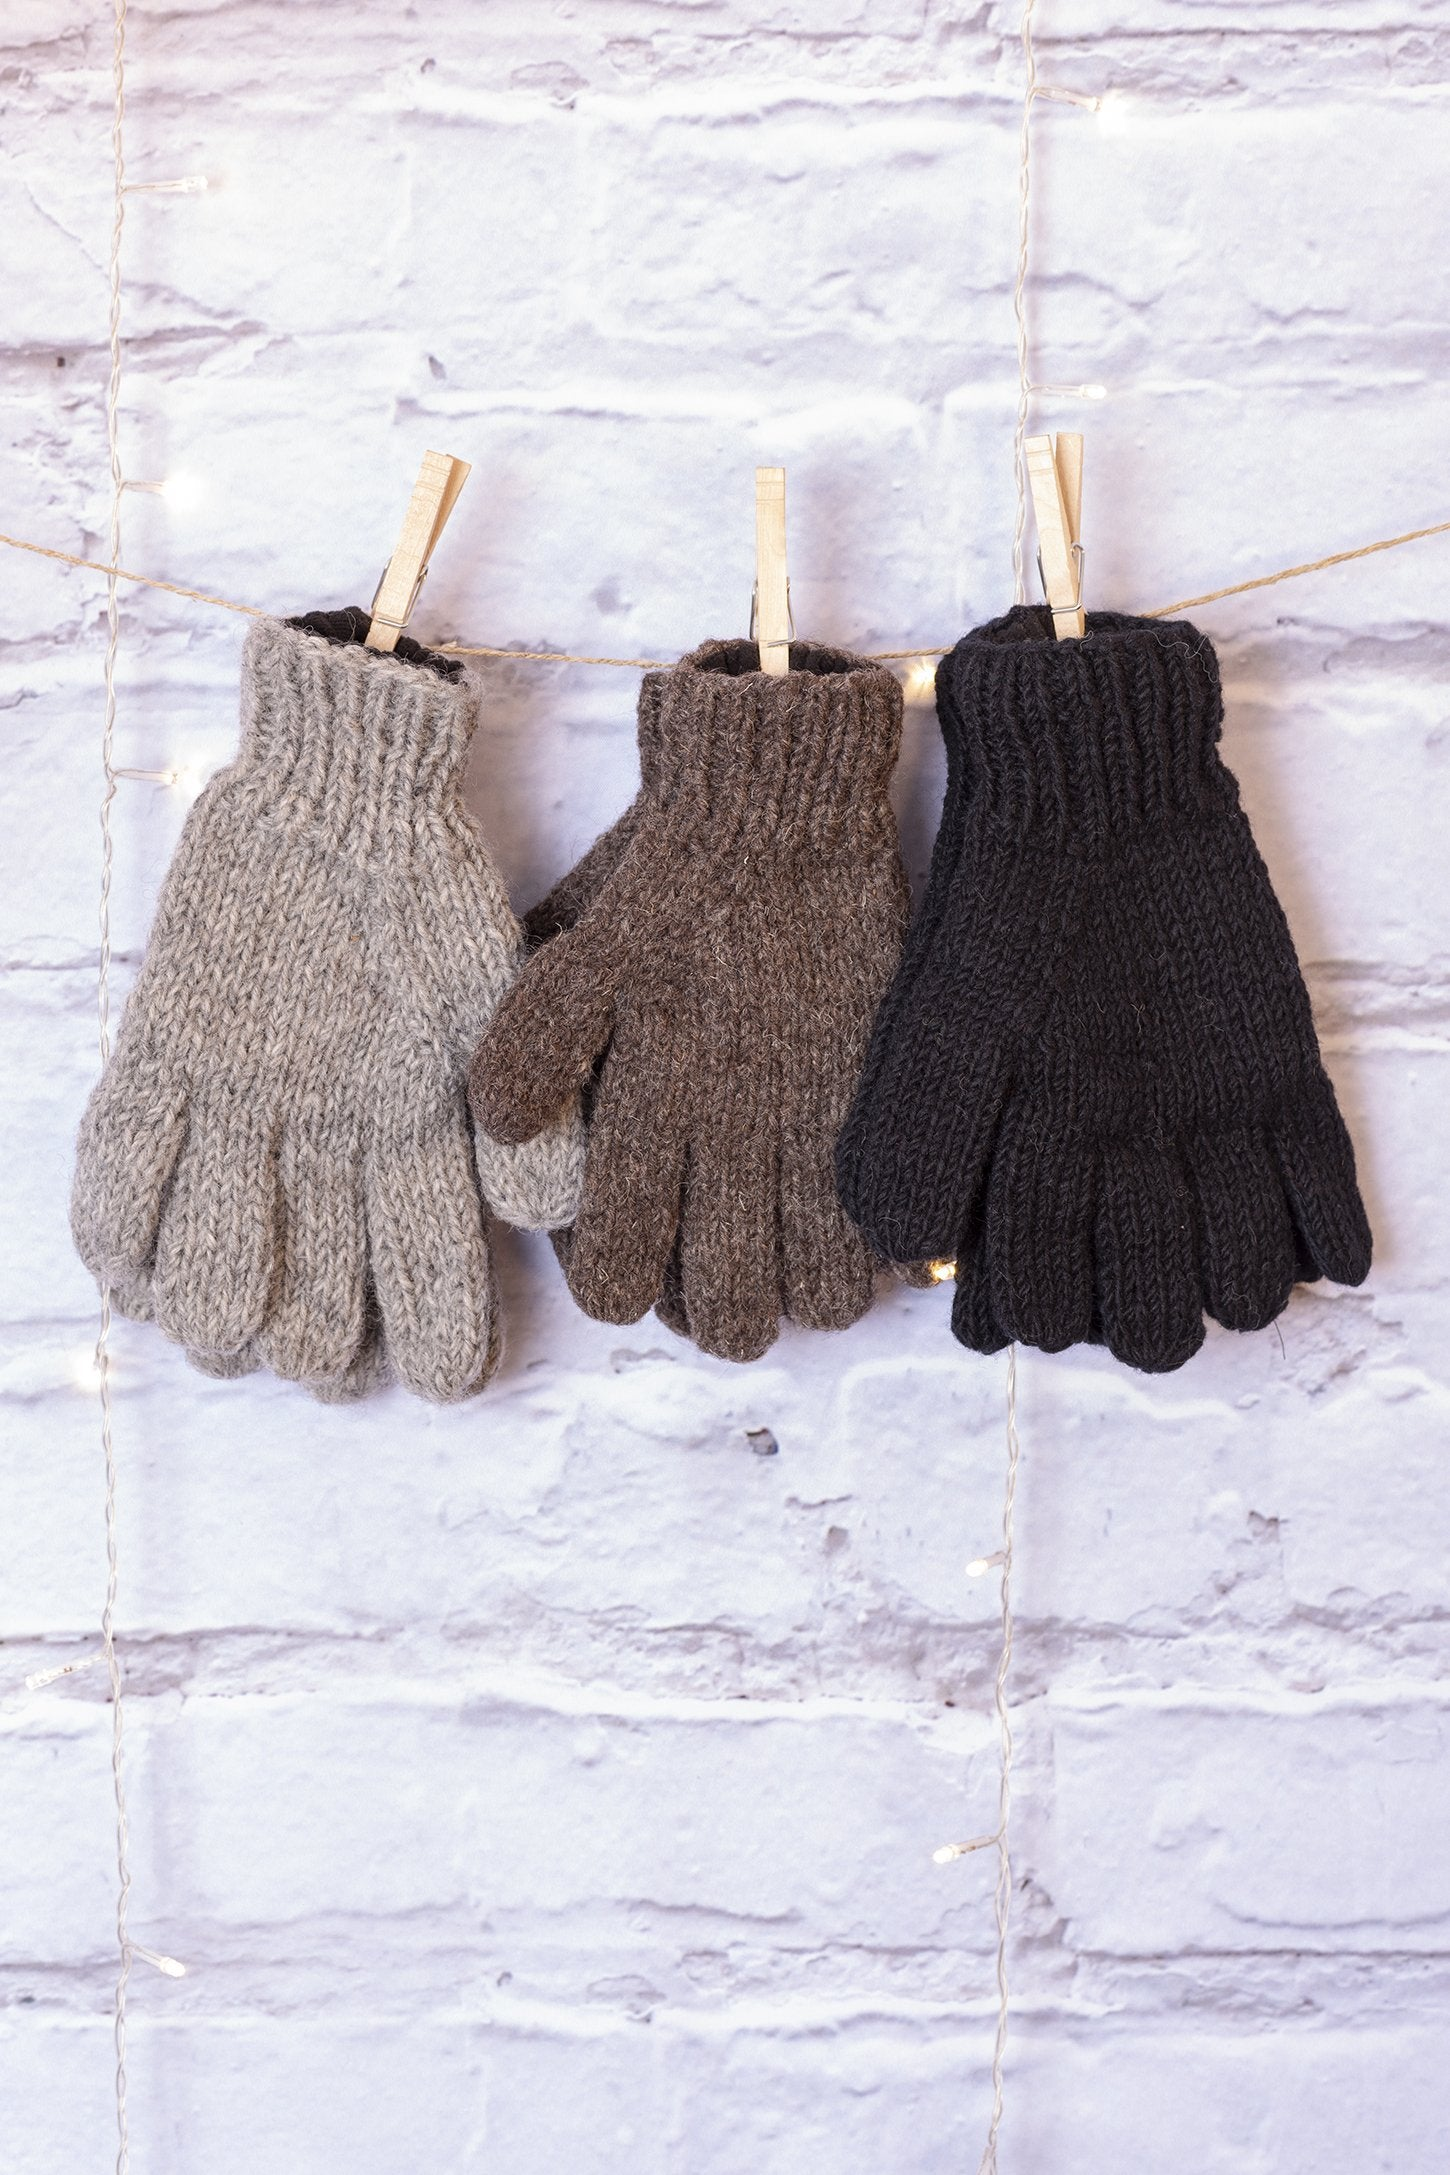 Vintage Style Gloves- Long, Wrist, Evening, Day, Leather, Lace Solid Colored Fleece Lined Wool Gloves $12.60 AT vintagedancer.com